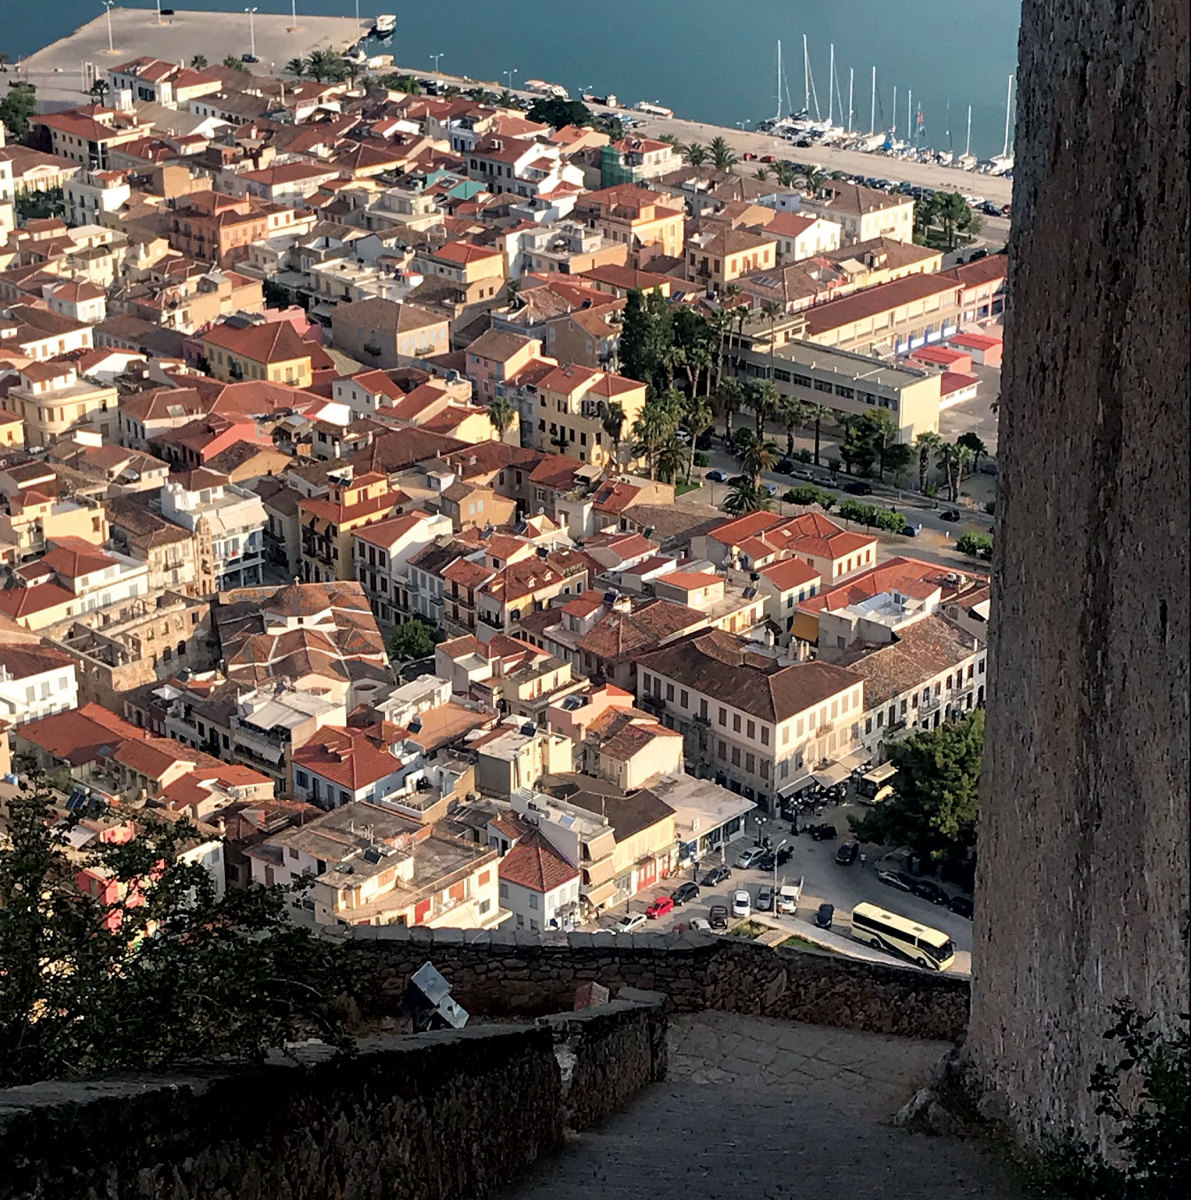 There's nothing like a relaxing walk up 1,000 steps to the top of the hill above the town of Naplion